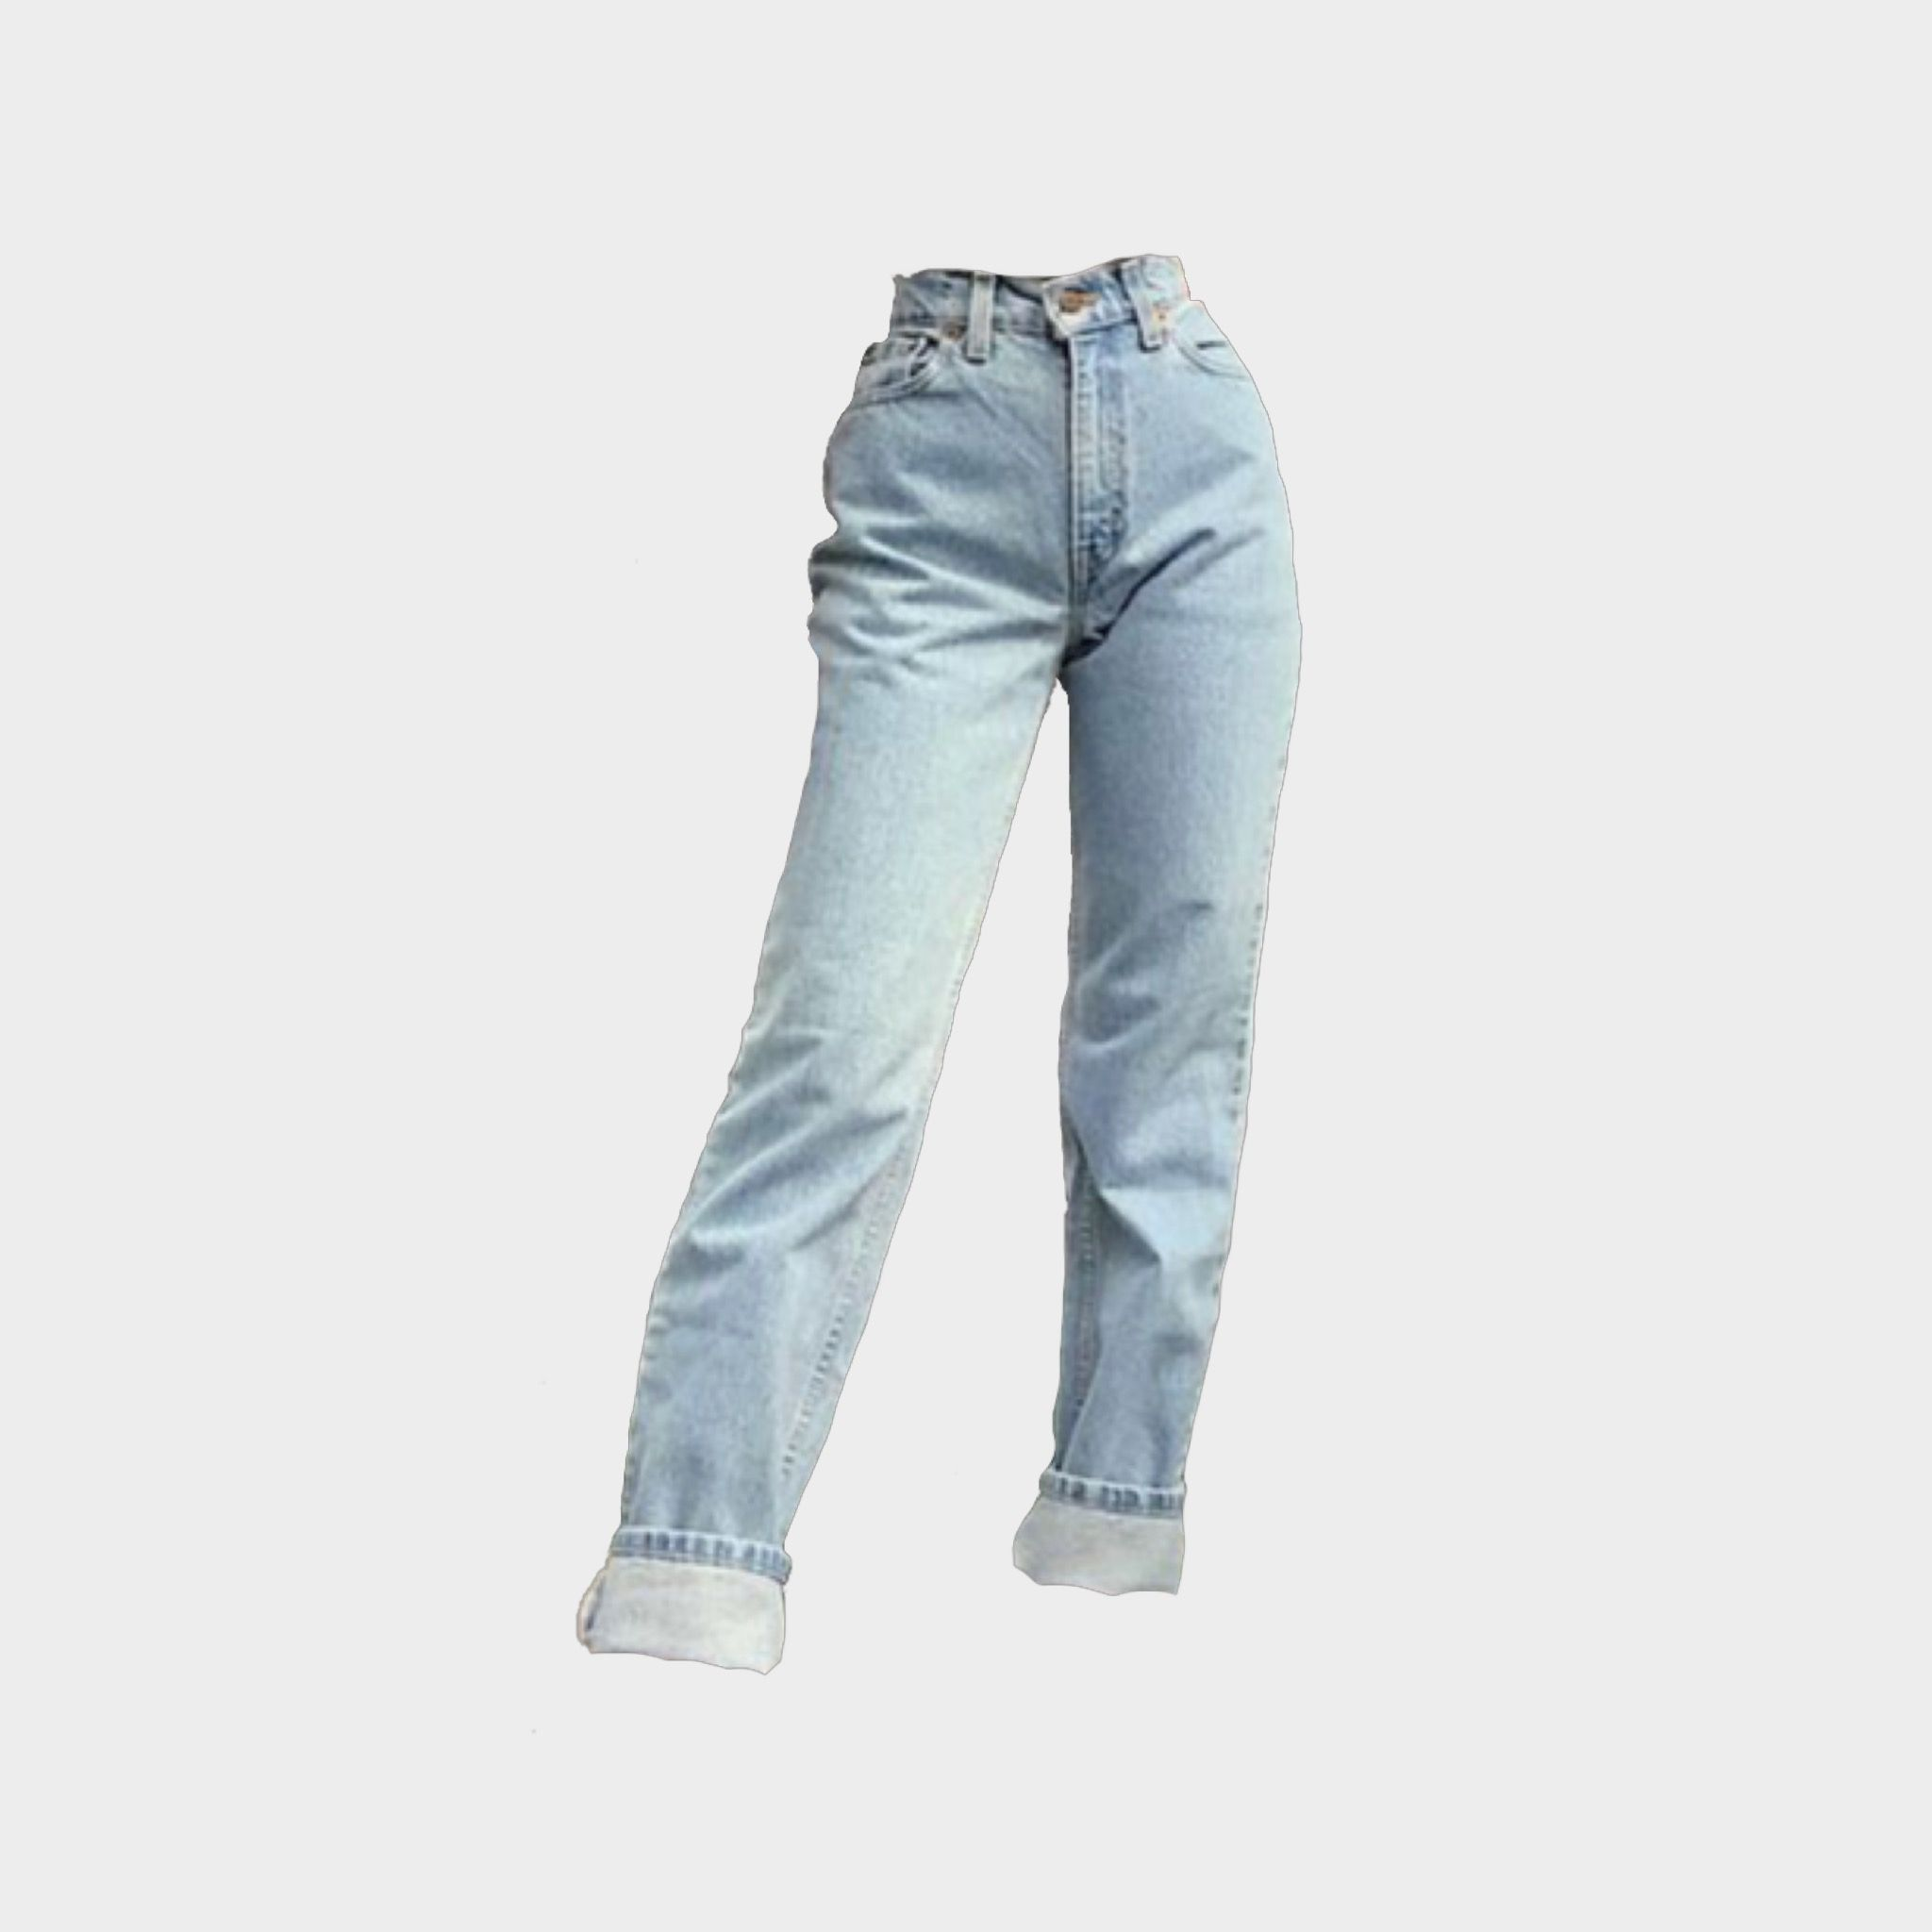 High Waisted Mom Jeans Png For Mood Boards Polyvore Fillers High Waisted Mom Jeans Mom Jeans Ripped Jeggings